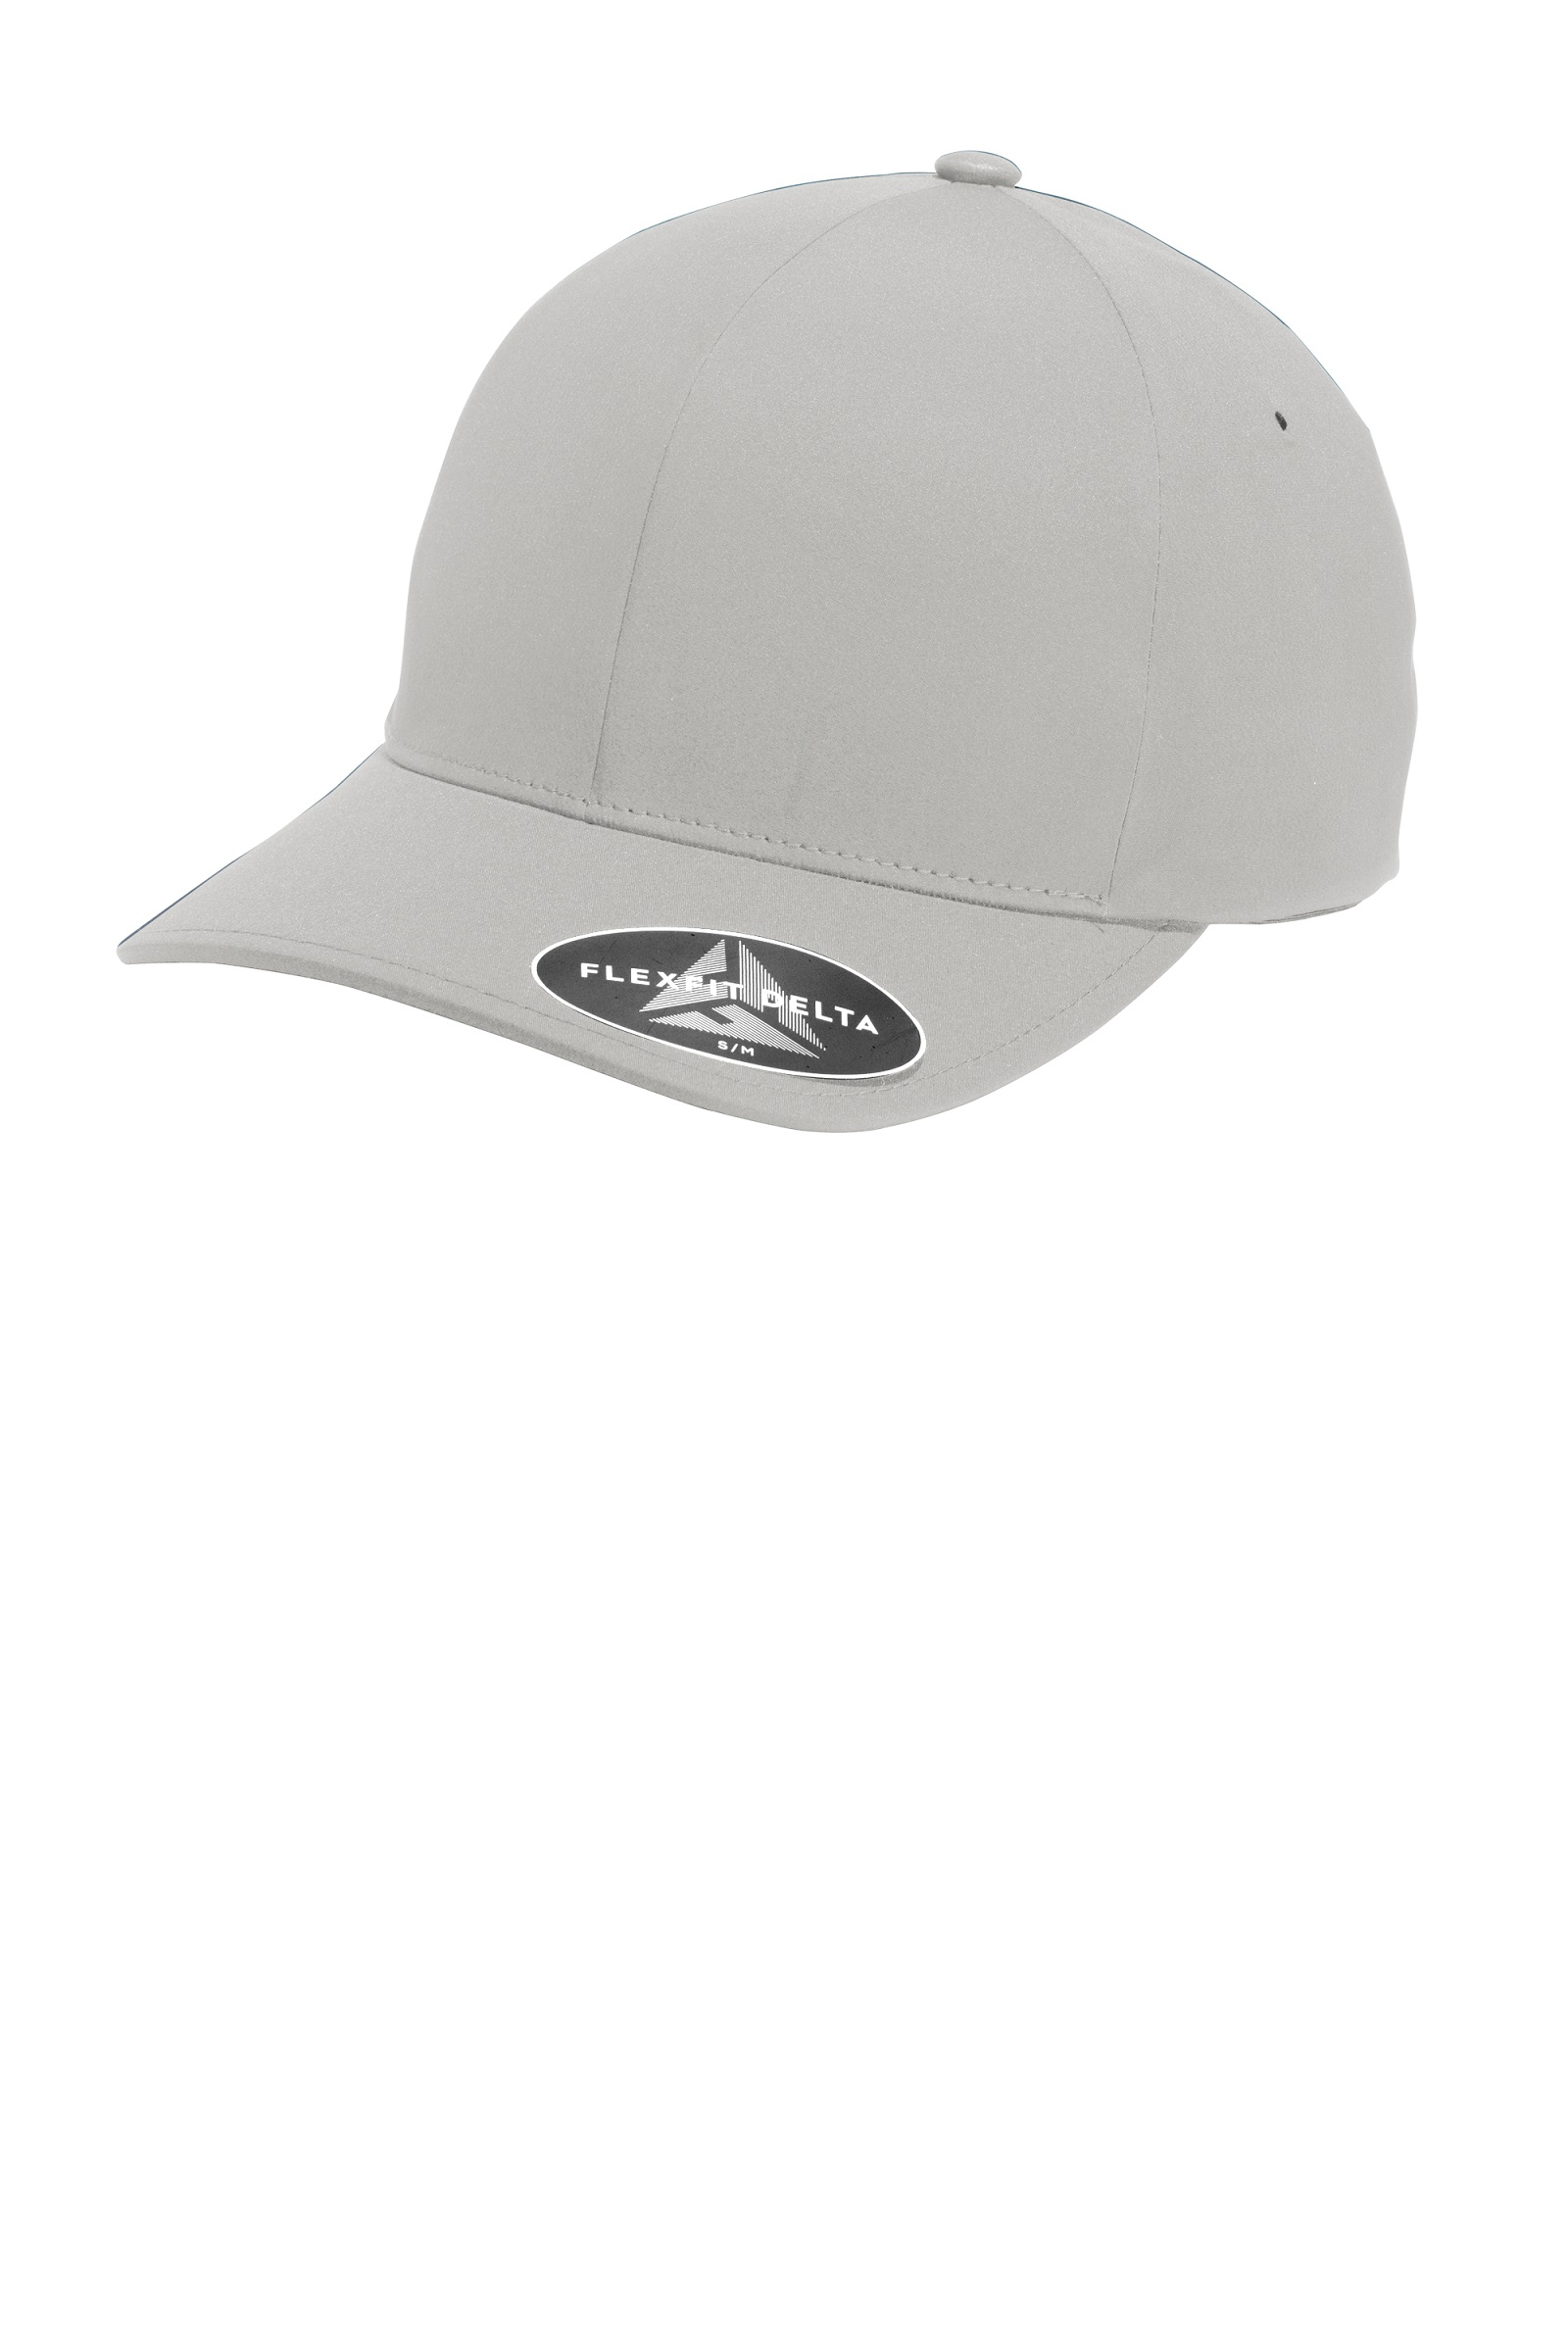 Port Authority Flexfit Embroidered Delta Cap